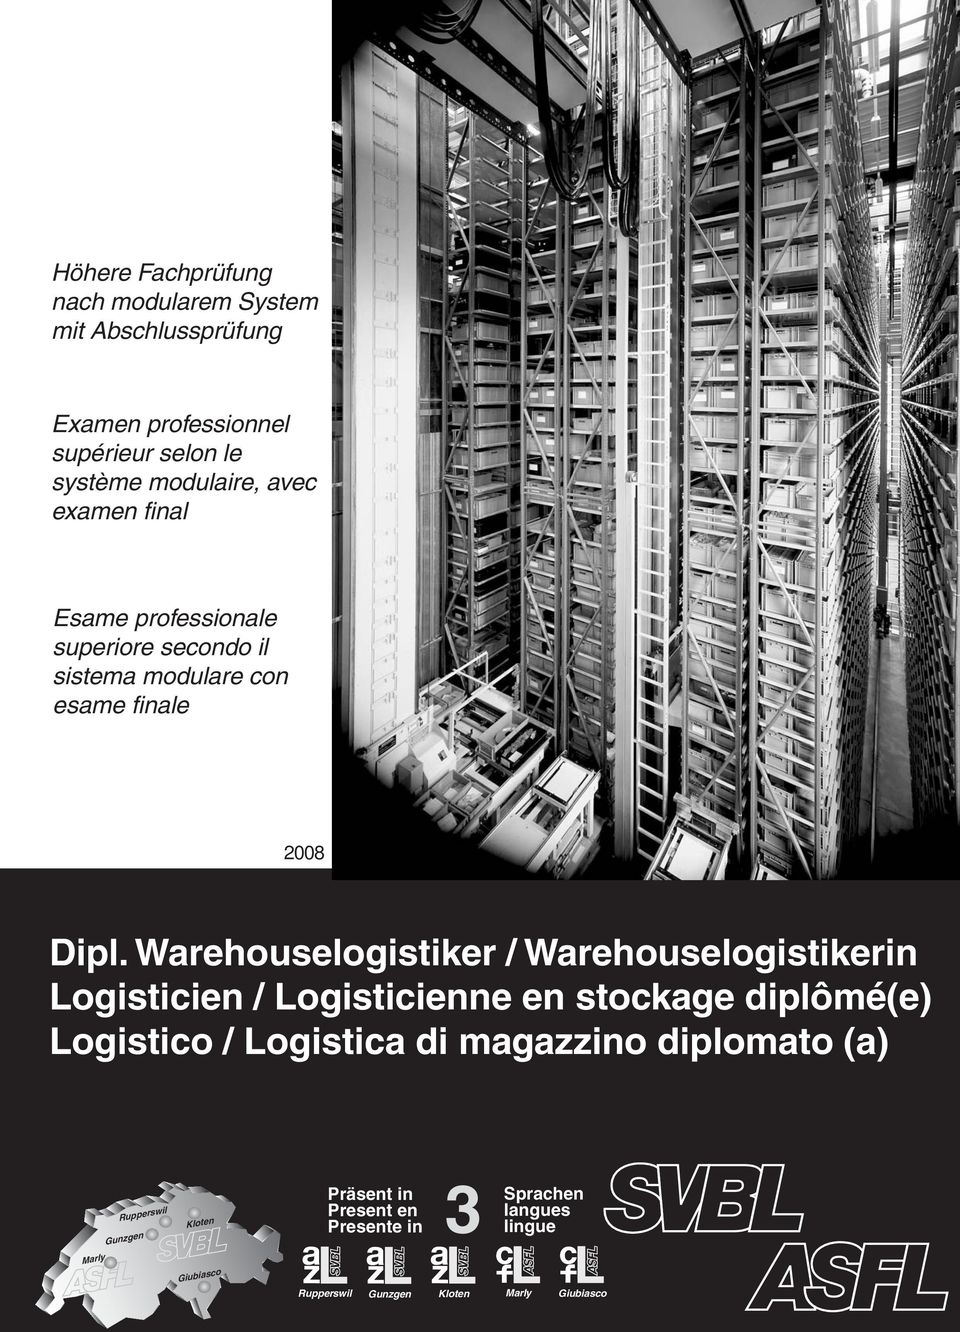 Warehouselogistiker / Warehouselogistikerin Logisticien / Logisticienne en stockage diplômé(e) Logistico / Logistica di